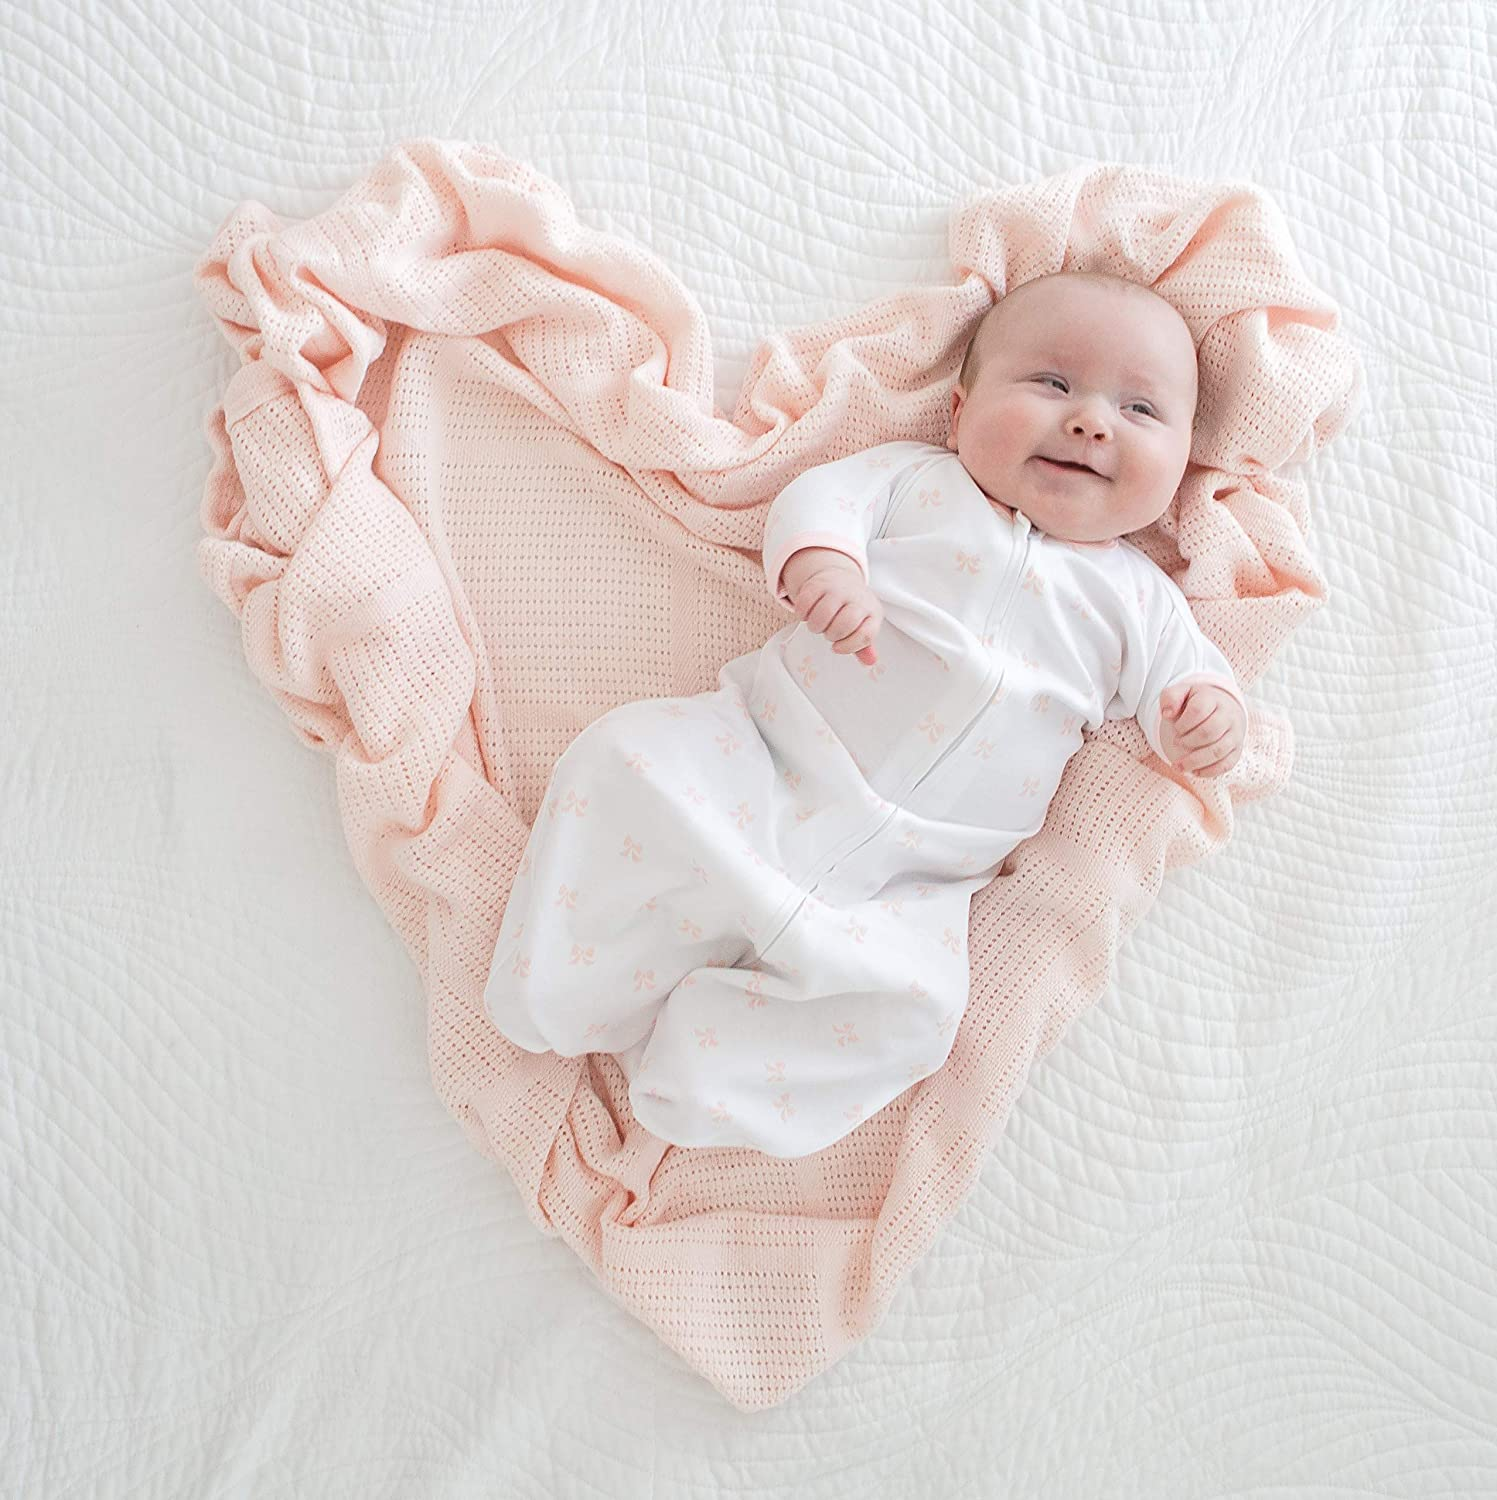 Pink 0-3 Months Small Amazing Baby Transitional Swaddle Sack with Arms Up Mitten Cuffs Tiny Bows